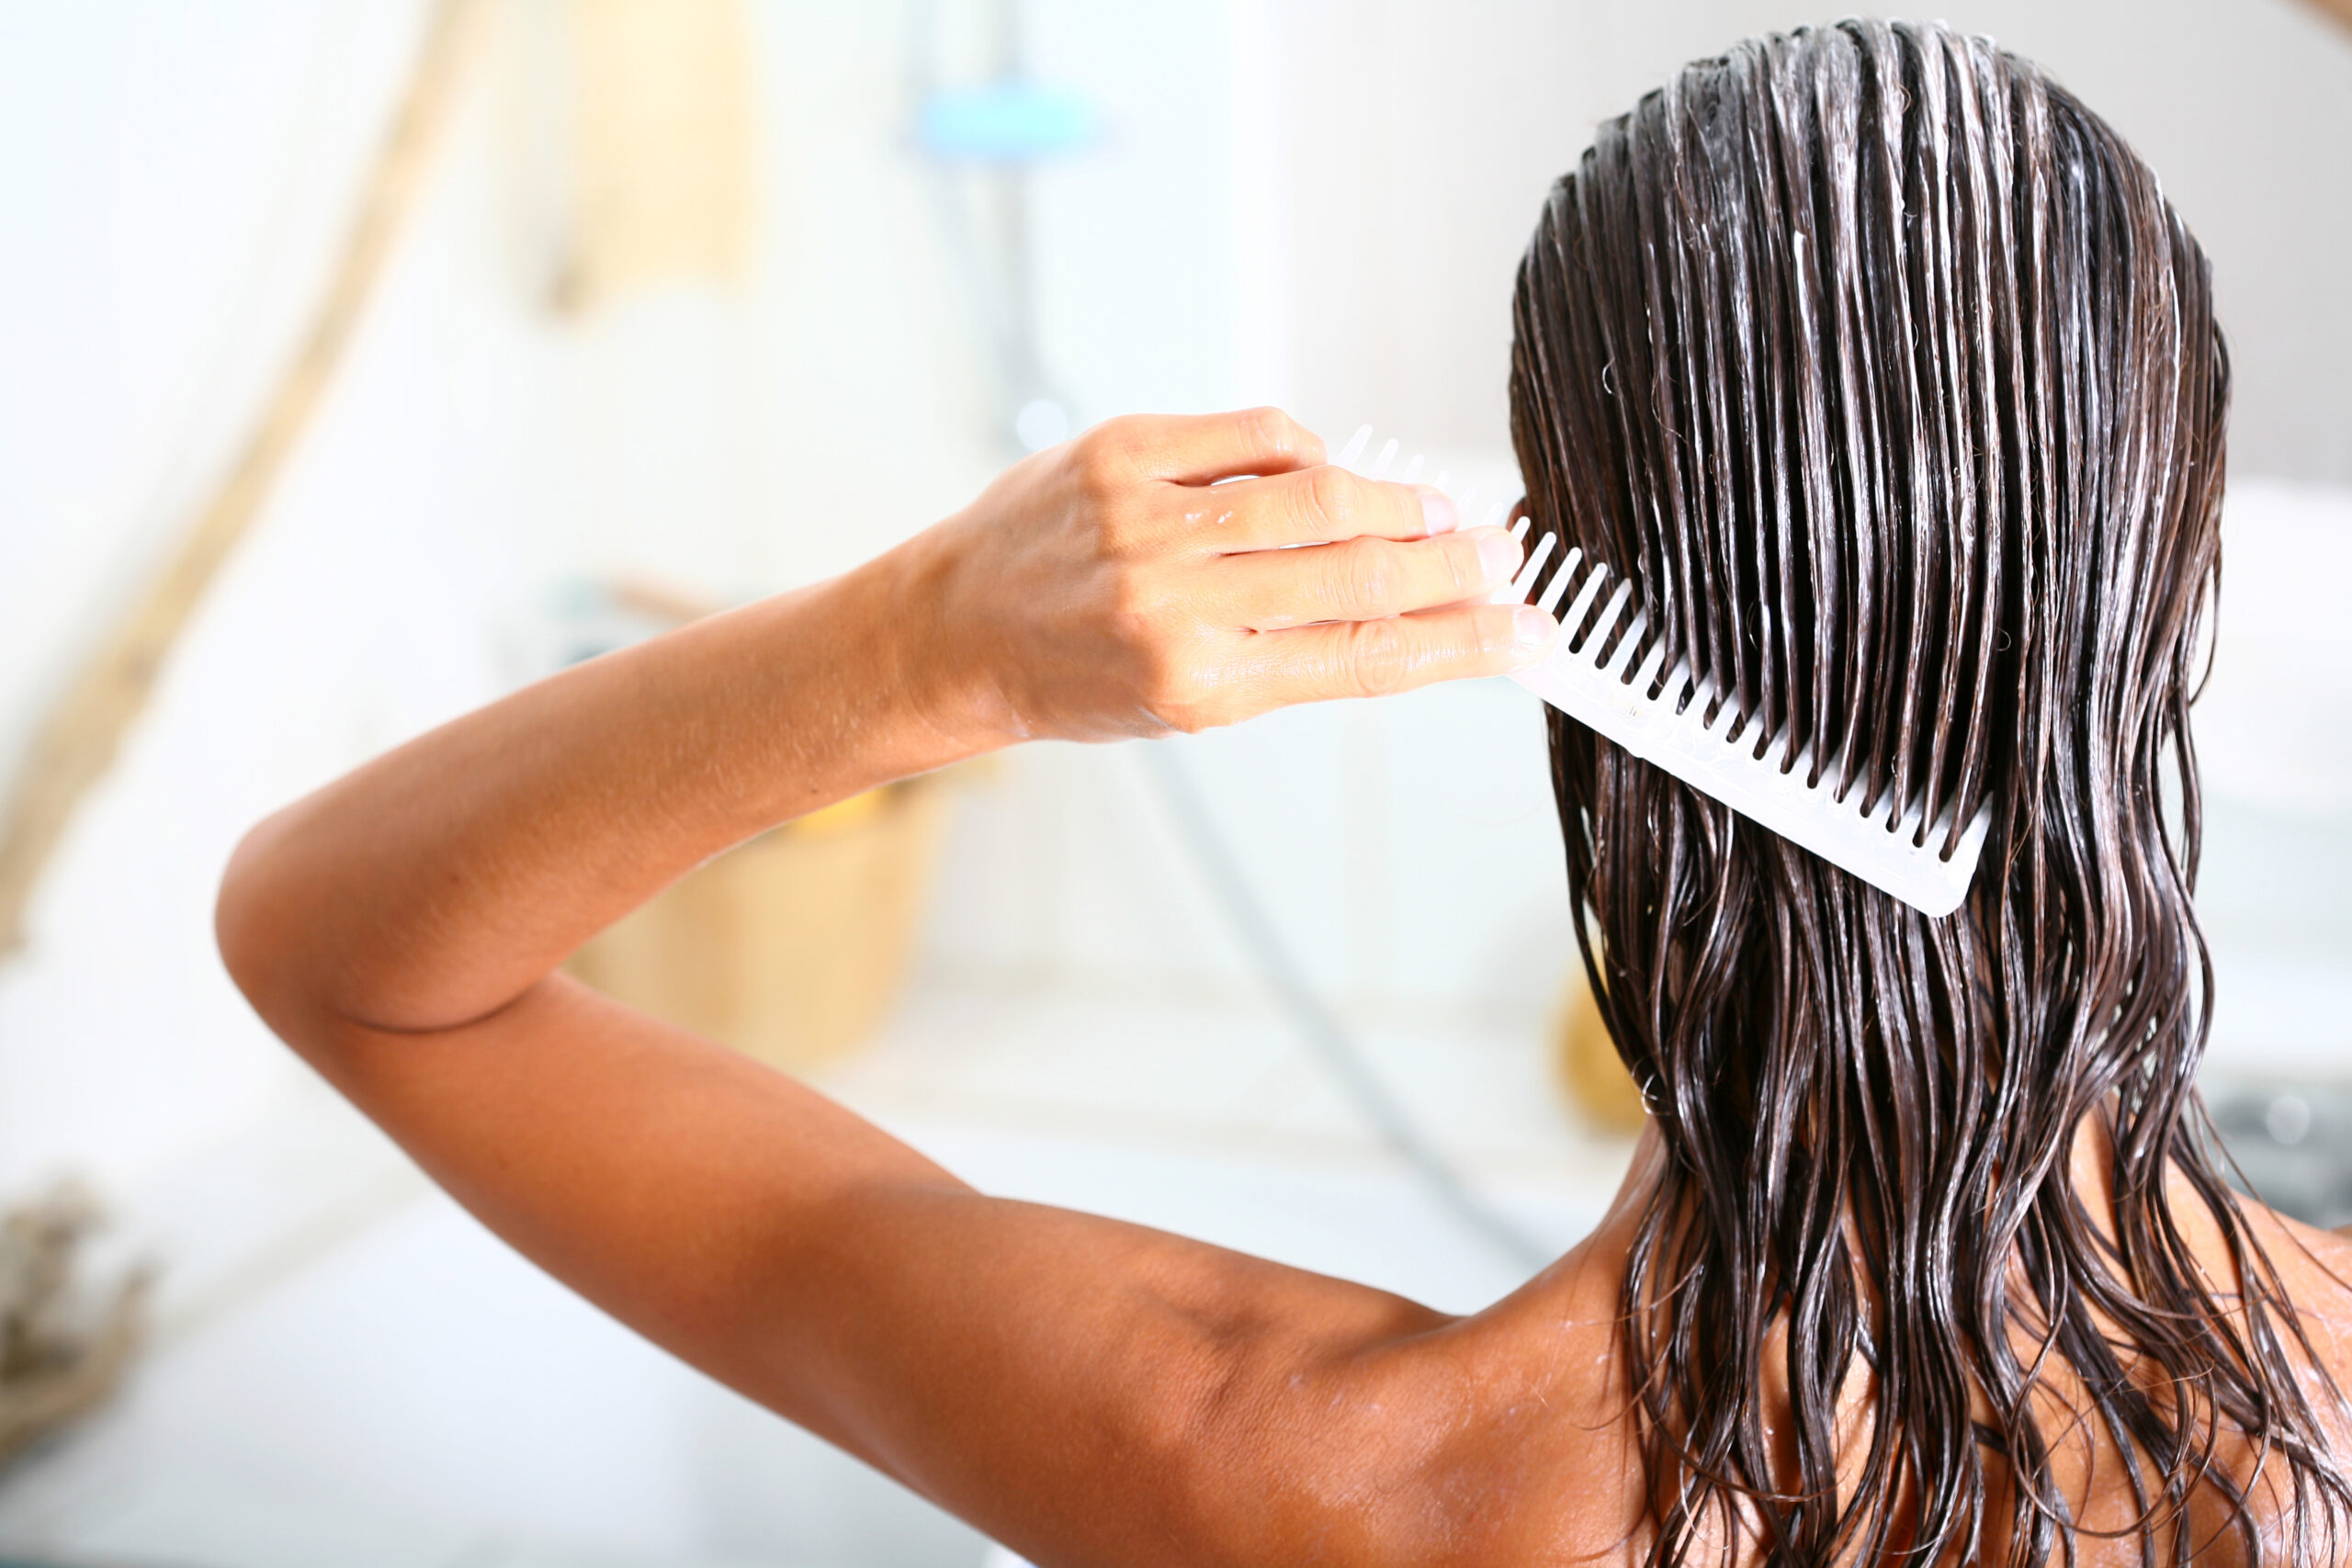 Reinvigorate Your Hair With These Simple Yet Effective Hair Care Tips!